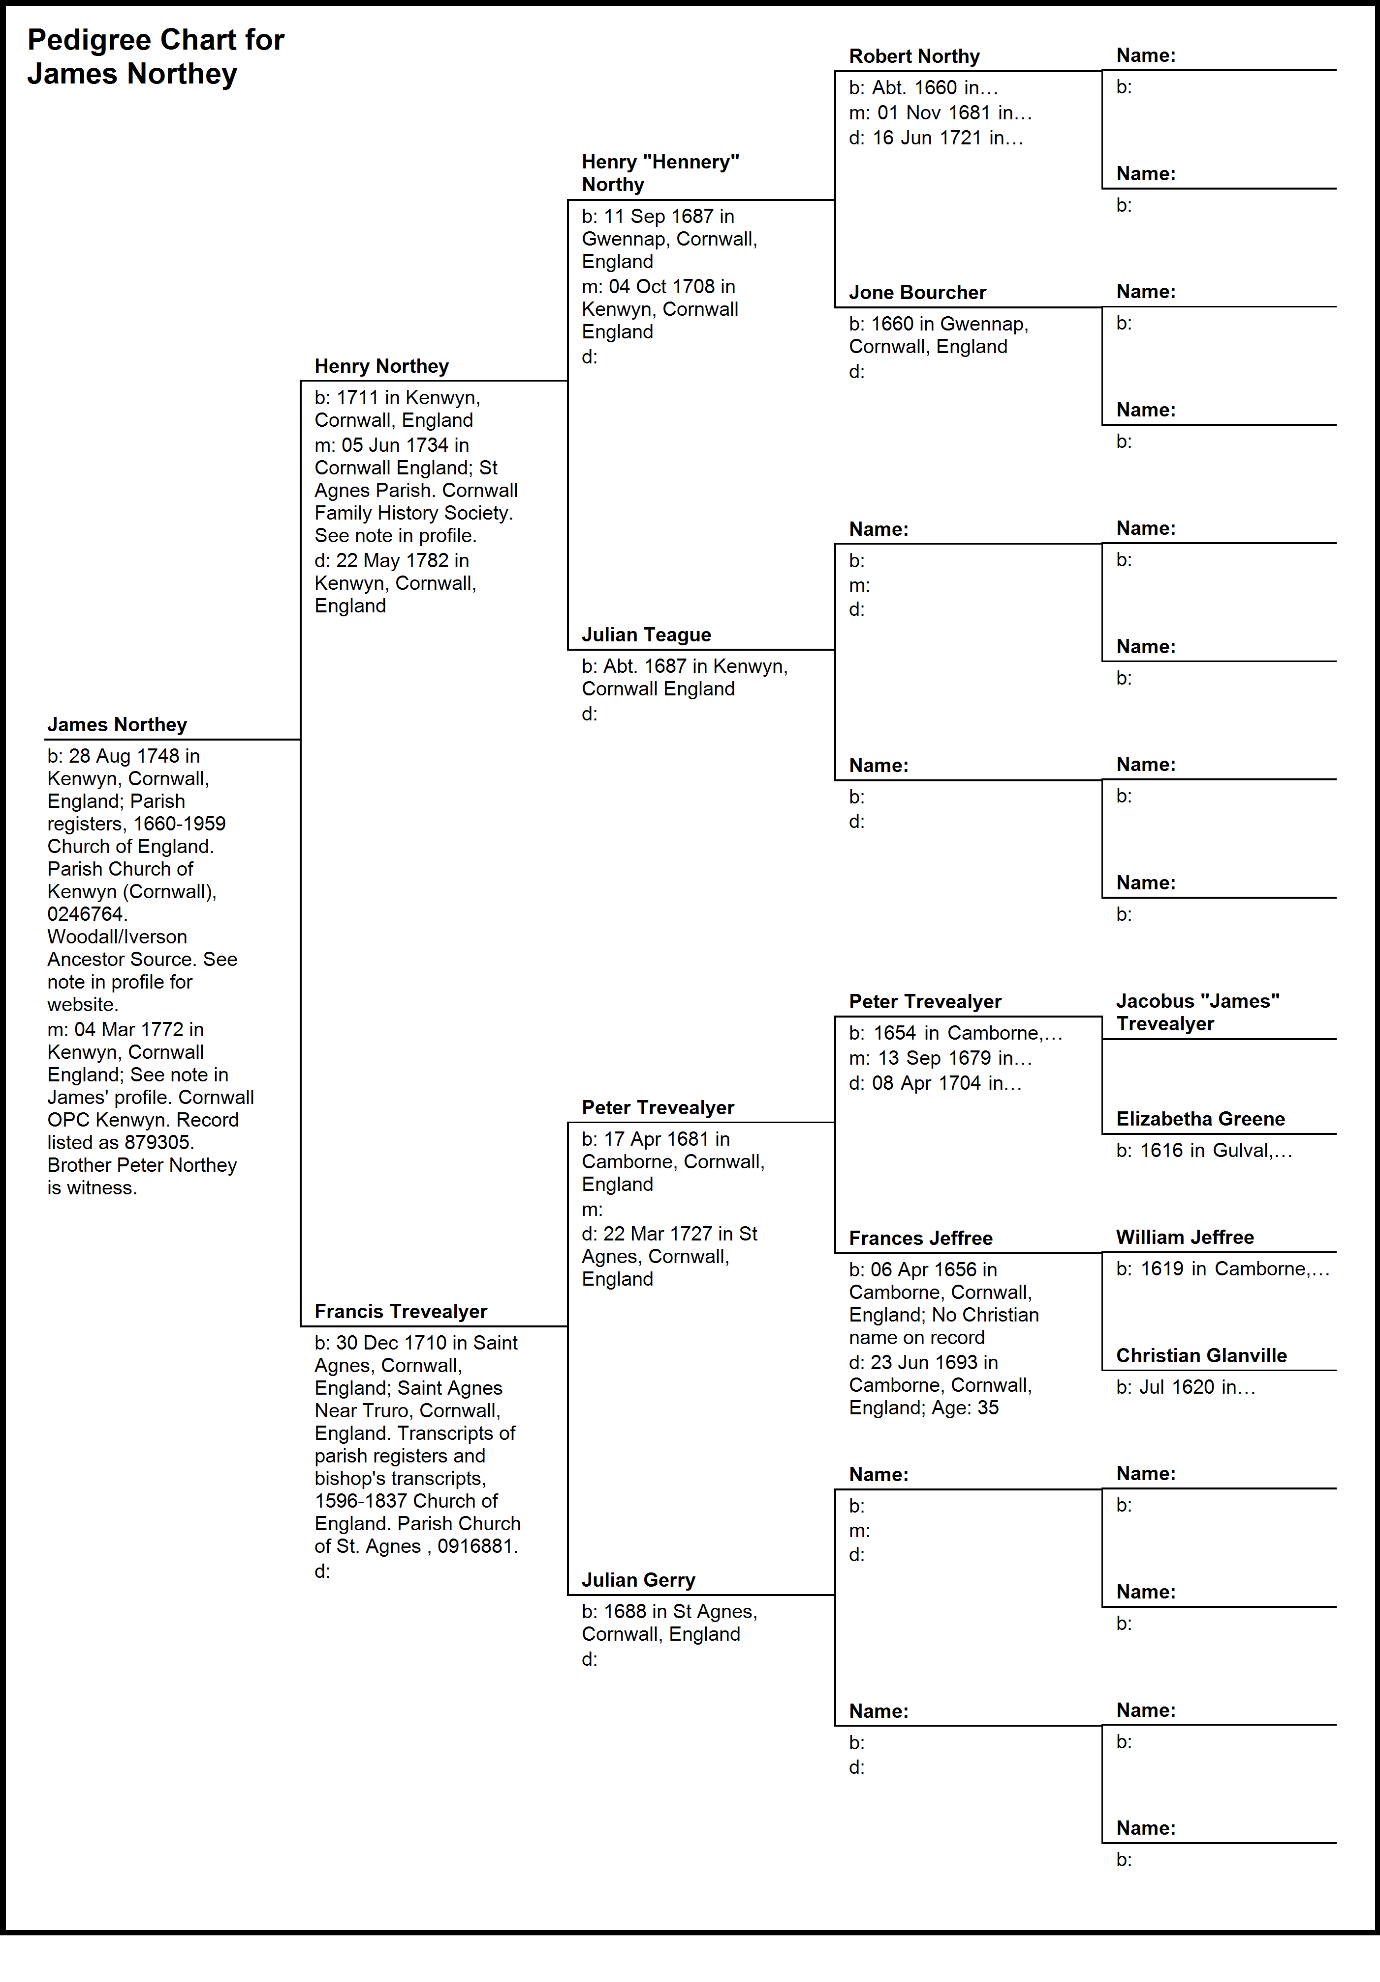 C:\Users\Virginia Rundle\Dropbox\VR\Ancestry Stuff\Fuller\Northey\Pedigree Chart for James Northey.bmp